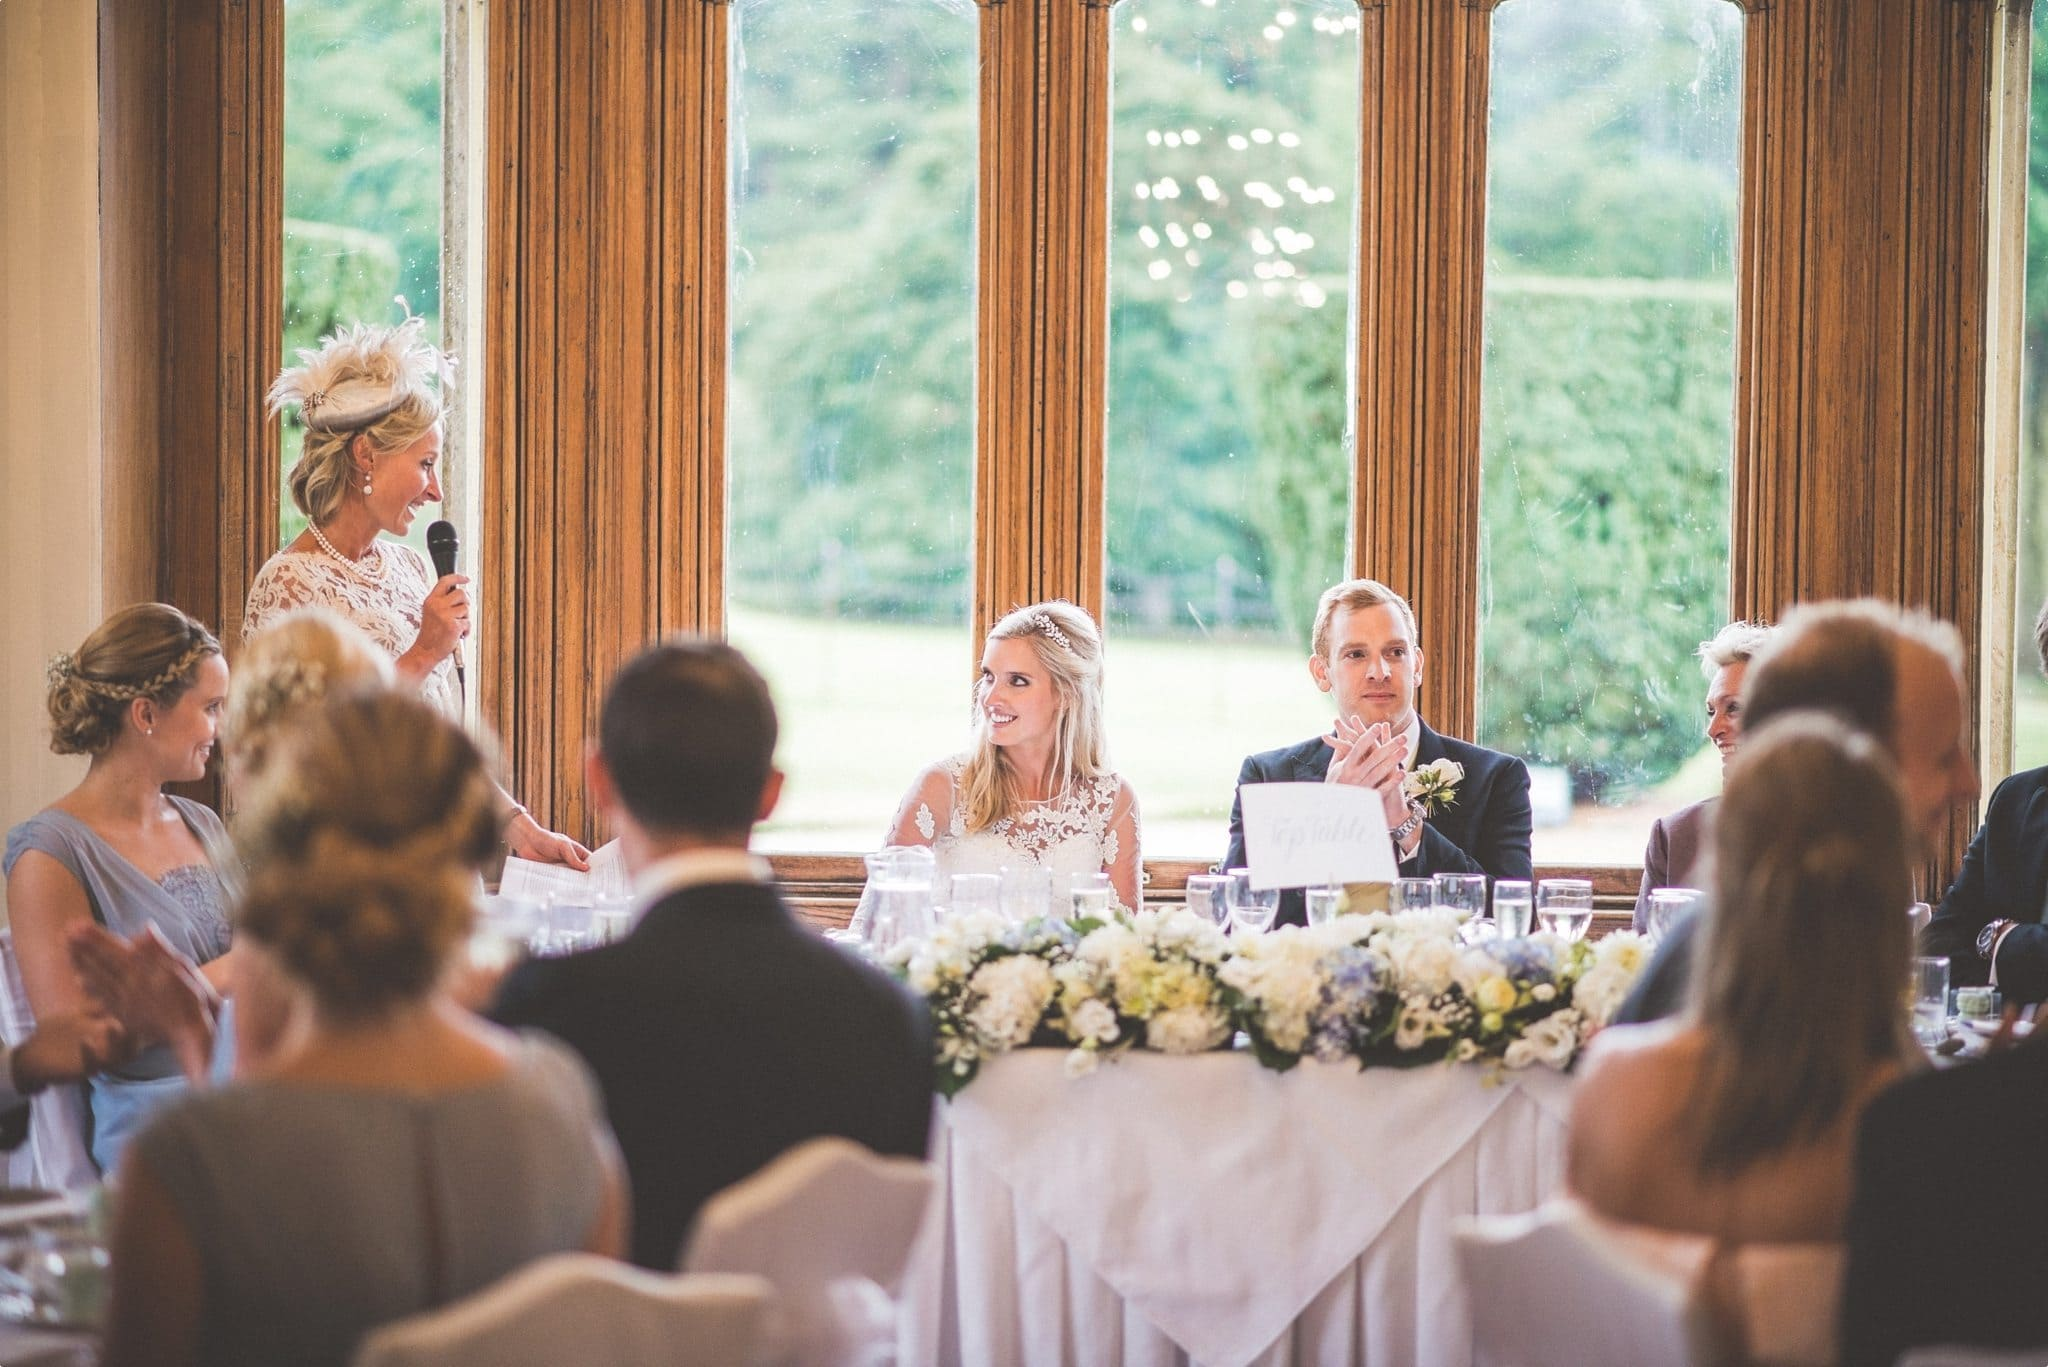 st-audries-park-wedding-maria-assia-photography-499